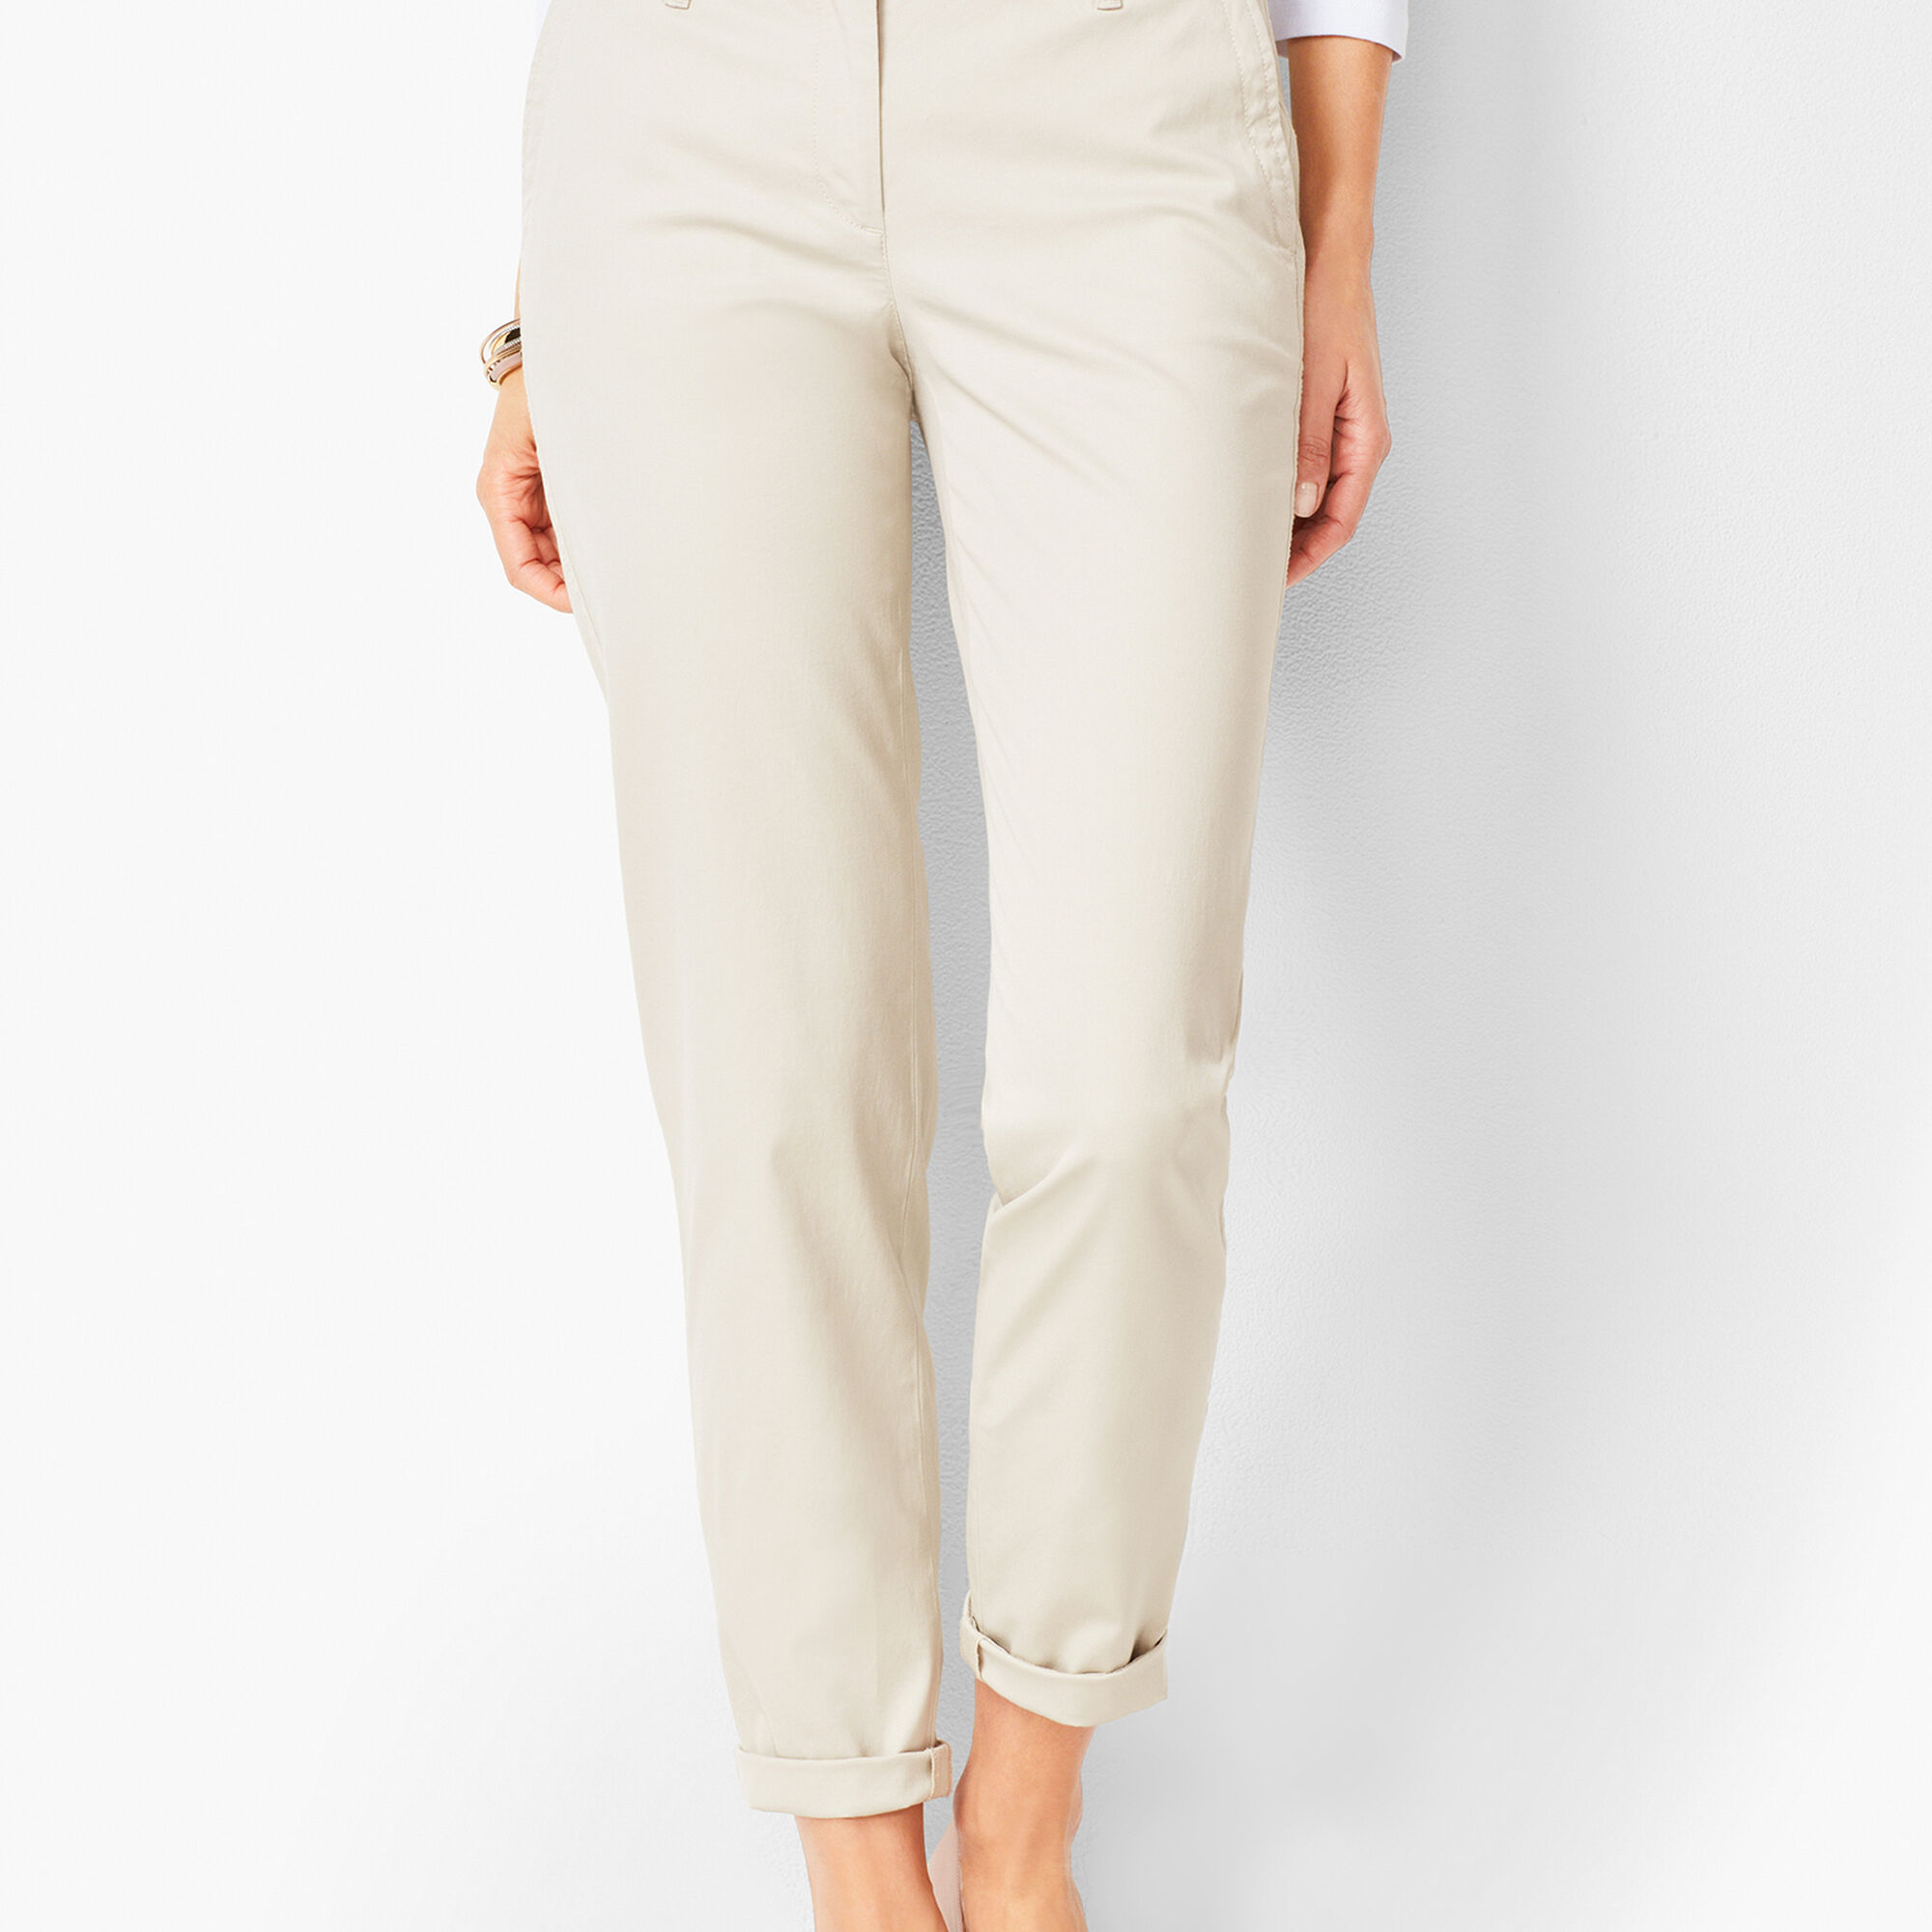 29919c09d2b Images. Girlfriend Chinos - Solid